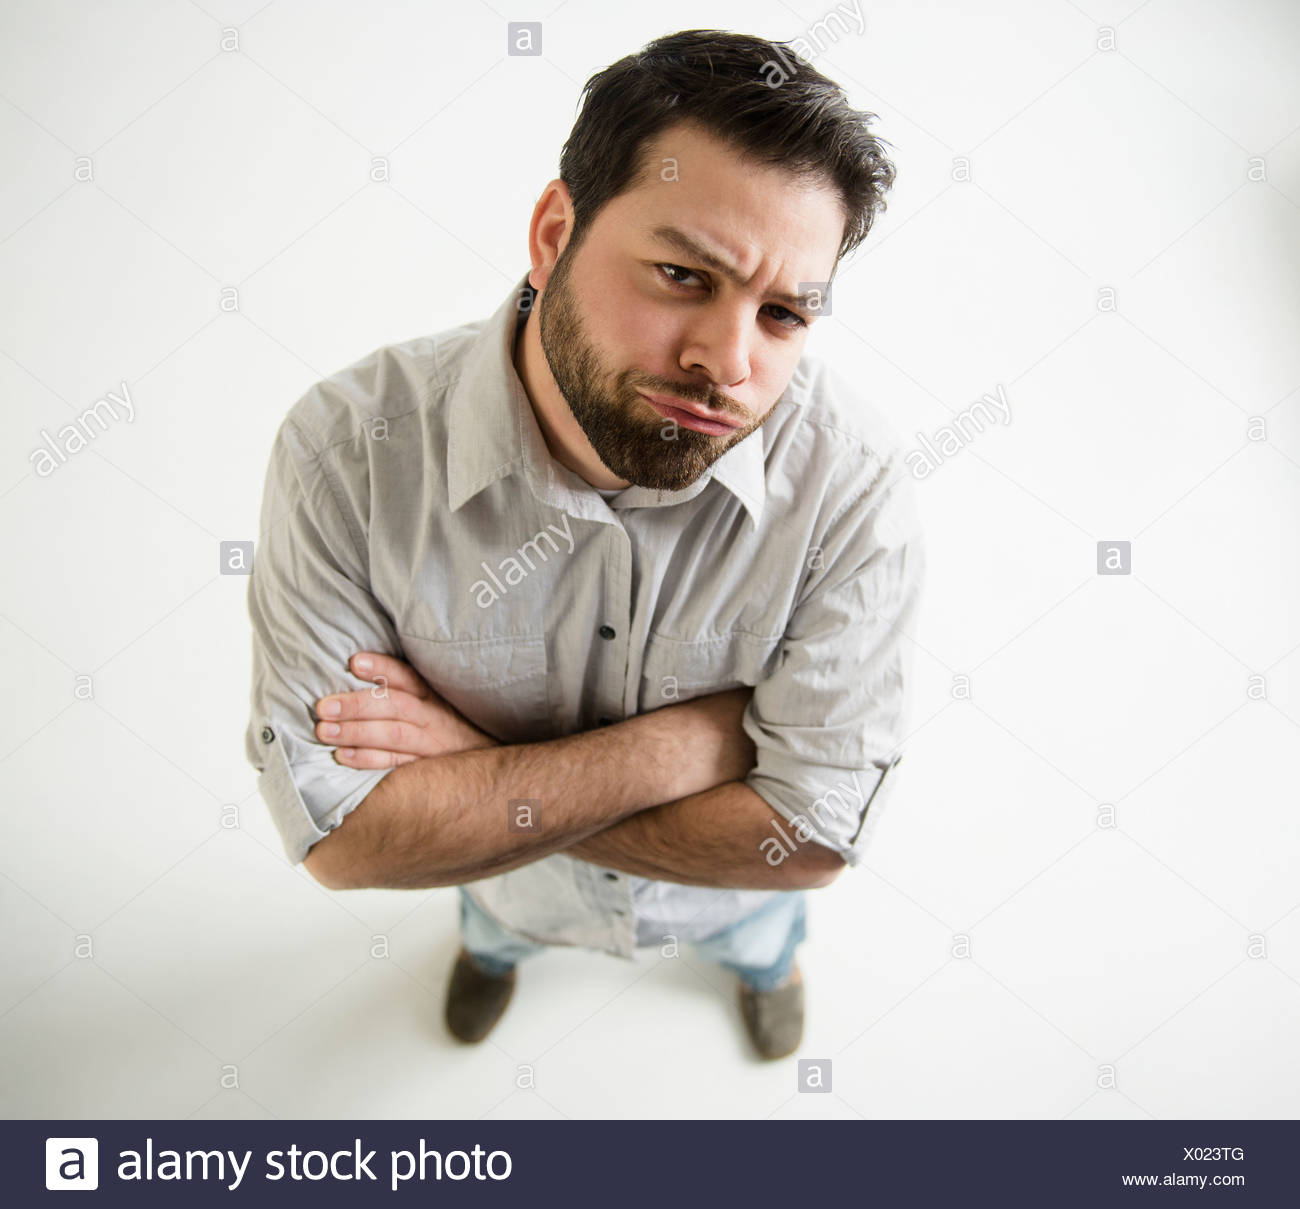 Elevated view of irritated man, arms crossed - Stock Image